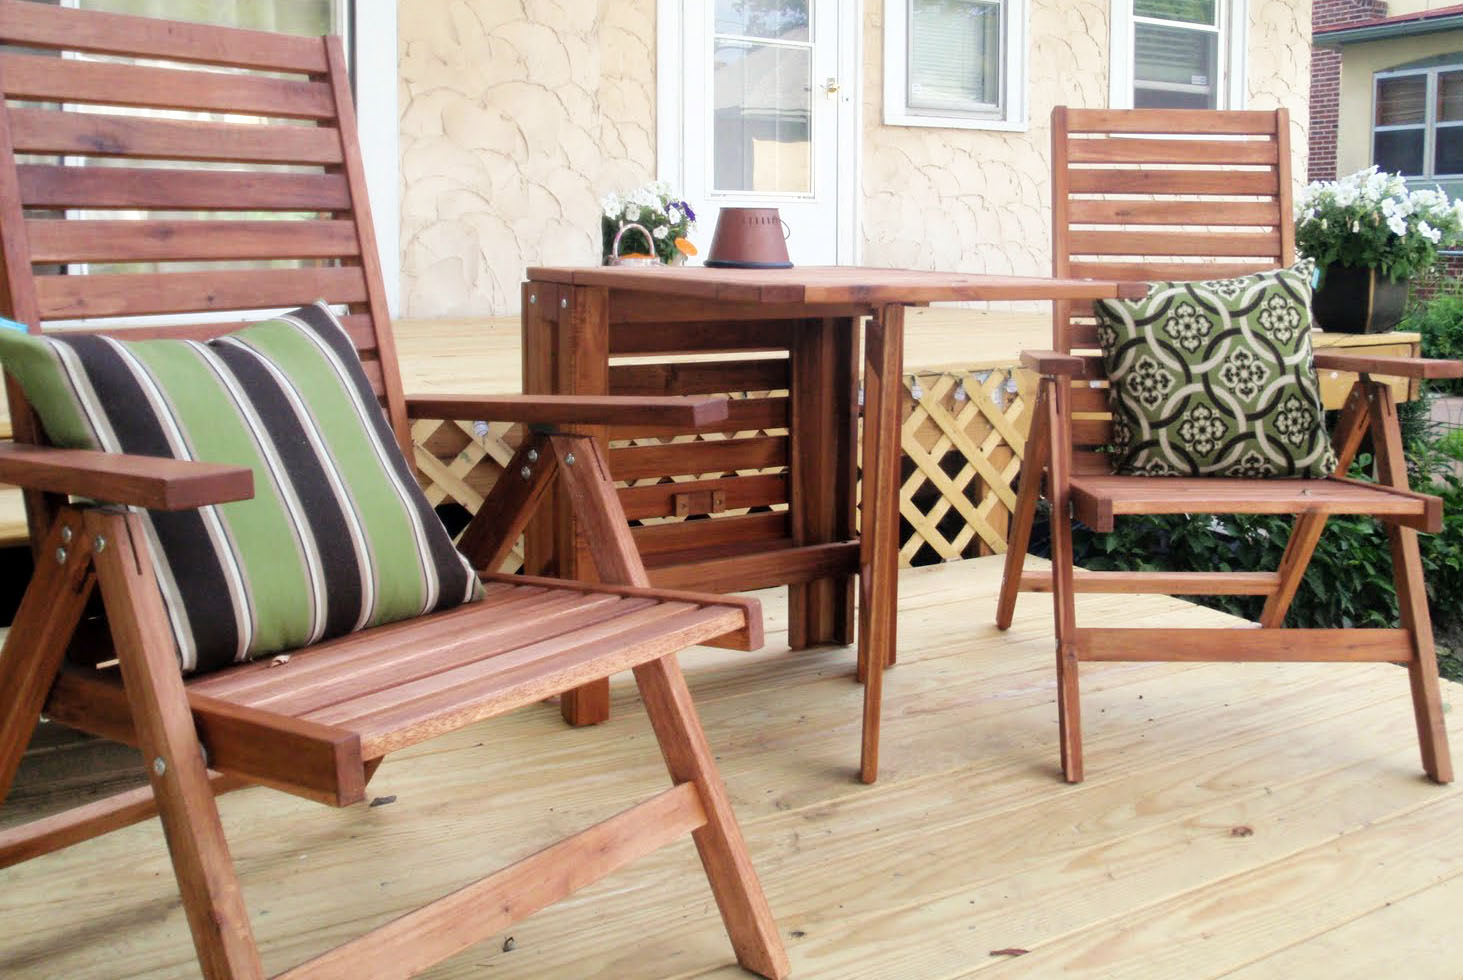 Small balcony furniture option homesfeed for Patio furniture for narrow balcony